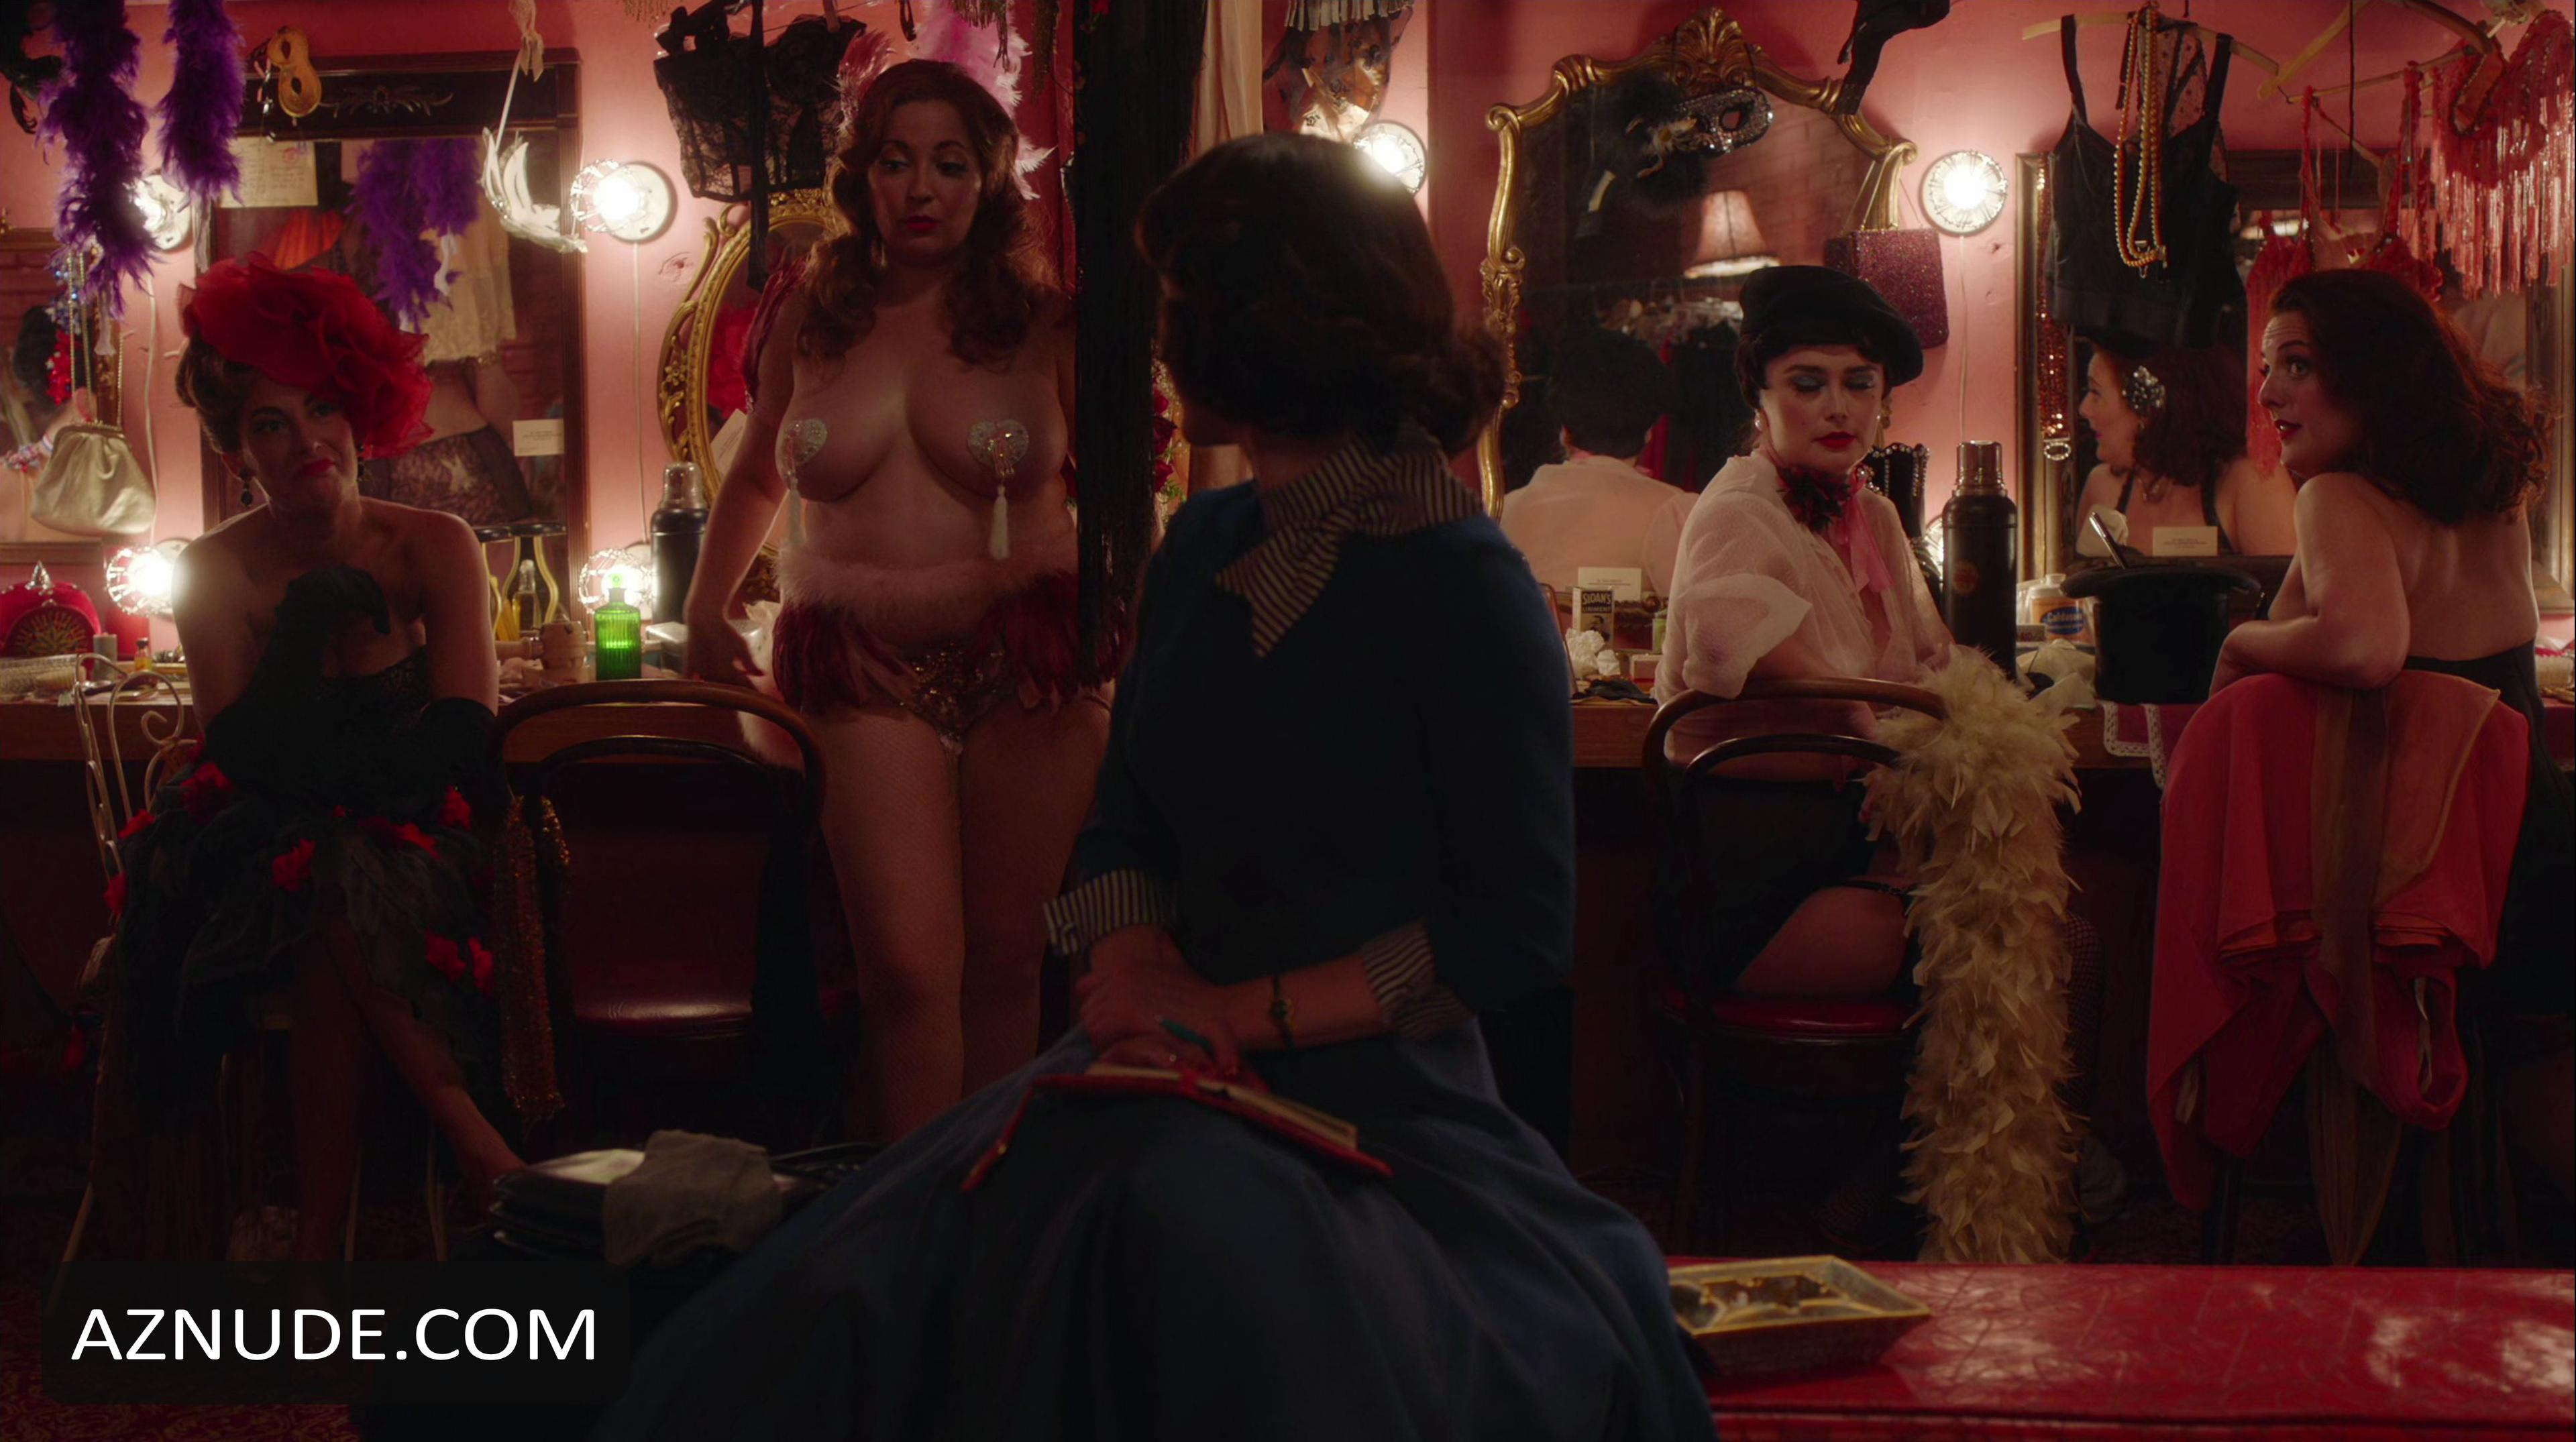 Ms Maisel Topless photo 21